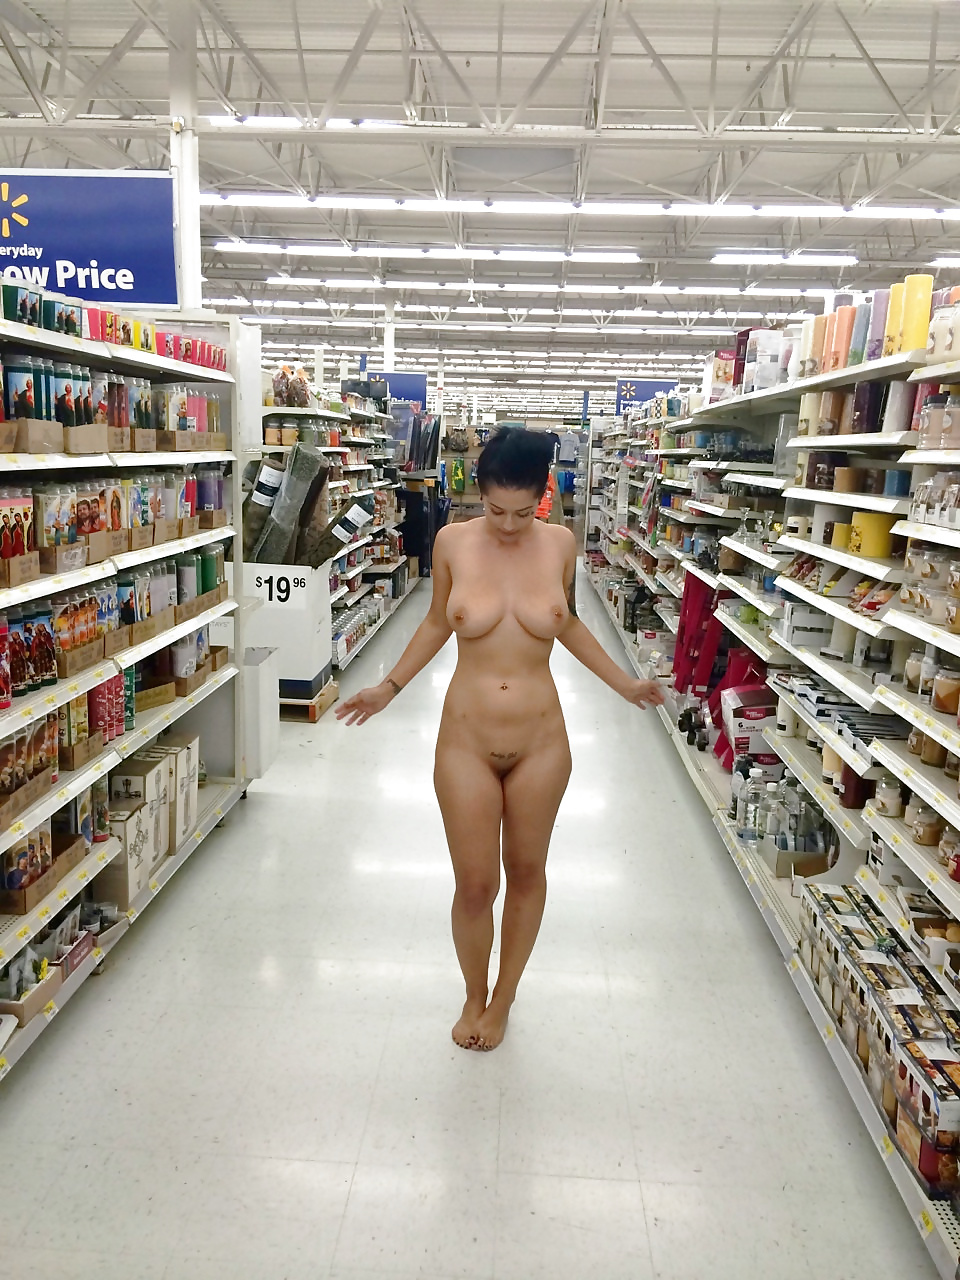 College girl shows goes around a grocery store in the nude on a dare